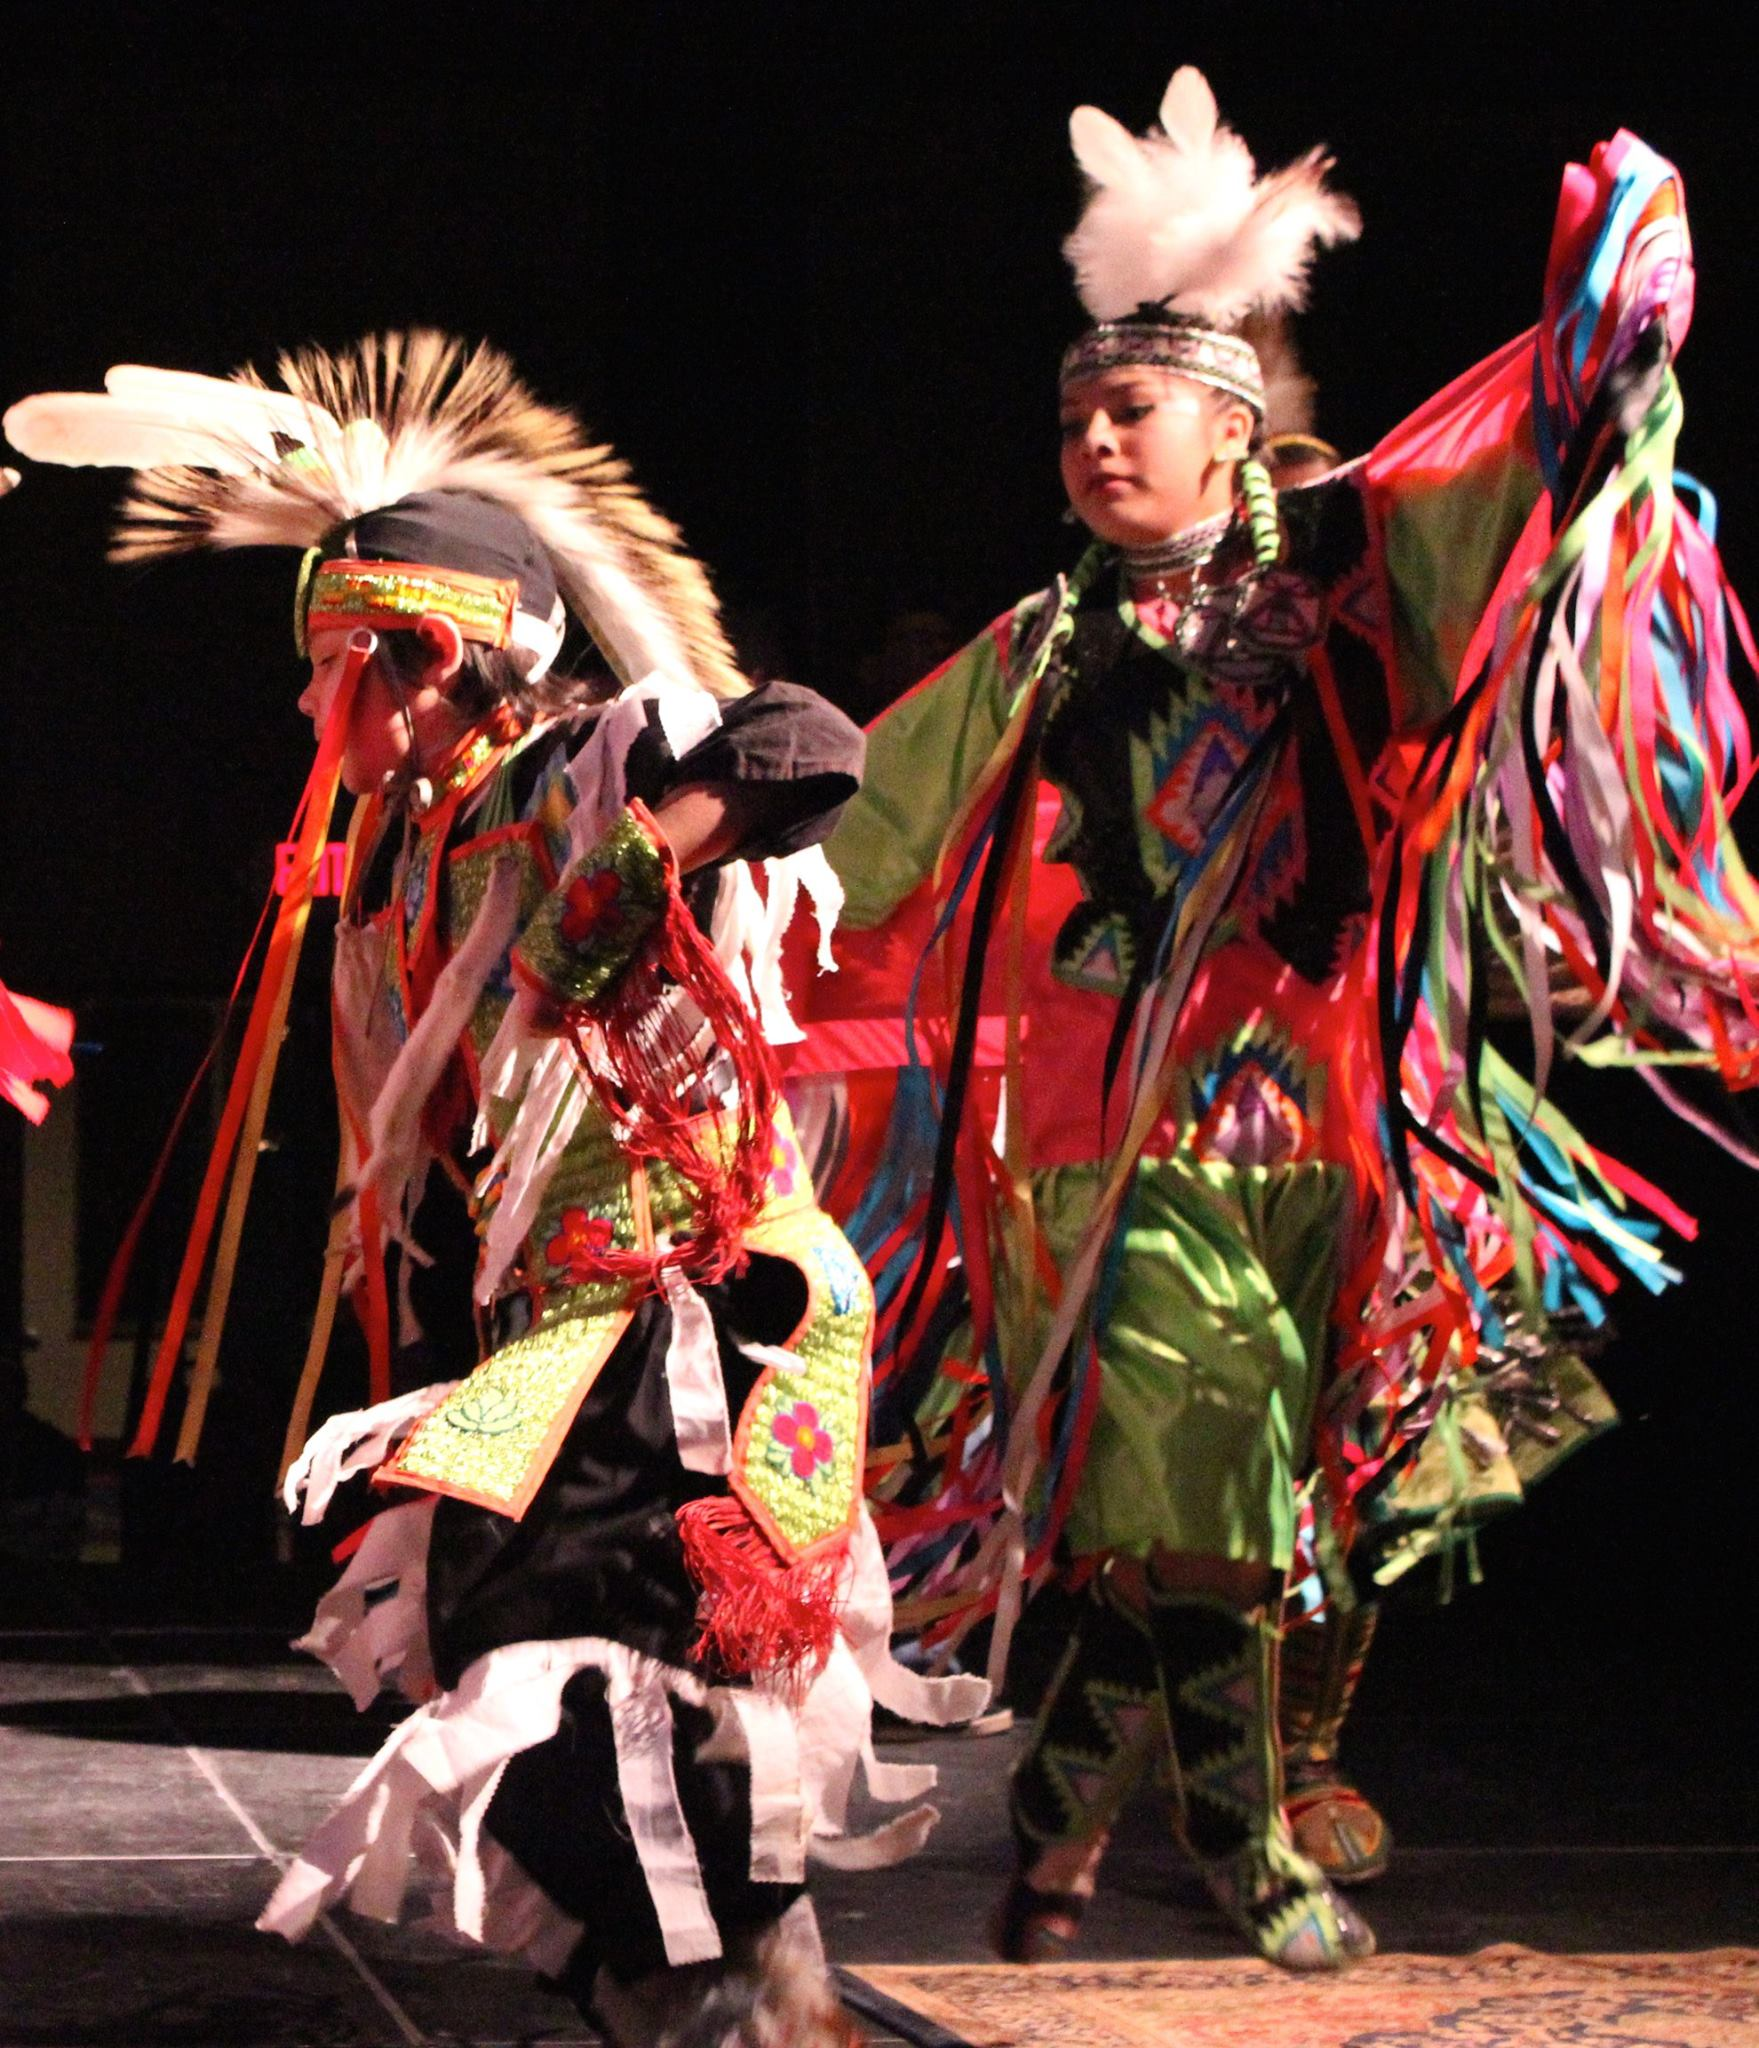 Members of the Northbird Singers, a group of singers, drummers and dancers from the Leech Lake Band of Ojibwa, perform a traditional dance during the Dec. 6, 2014 Great Northern Radio Show at the Northern Lights Casino in Walker, Minnesota. The next Great Northern Radio Show will take place March 7, 2015 at North Hennepin Community College in Brooklyn Park.